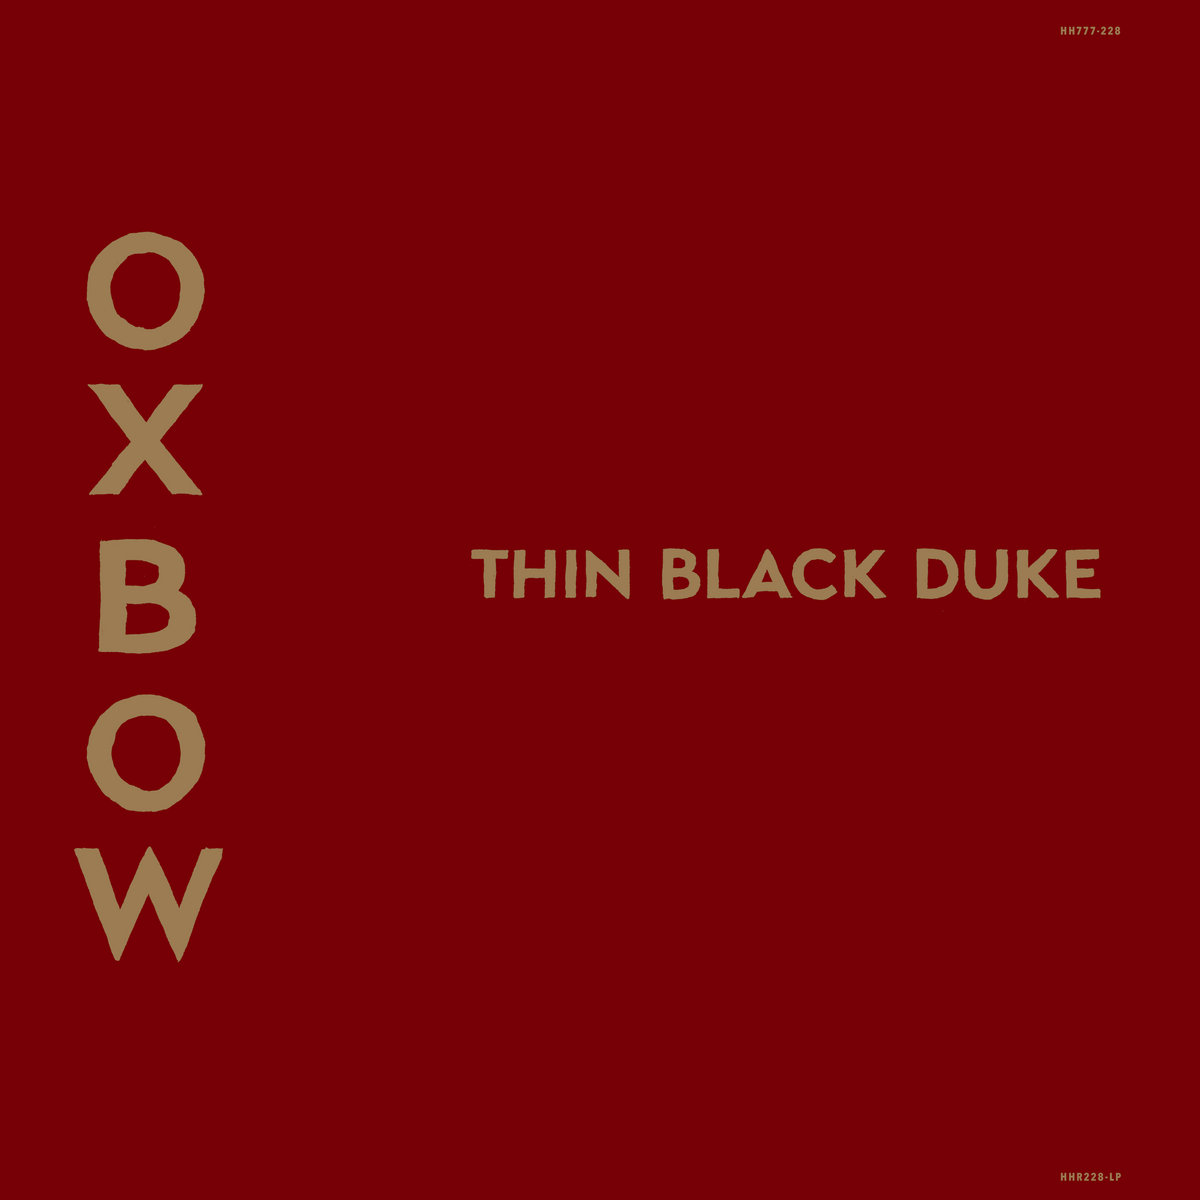 Thin black duke by oxbow